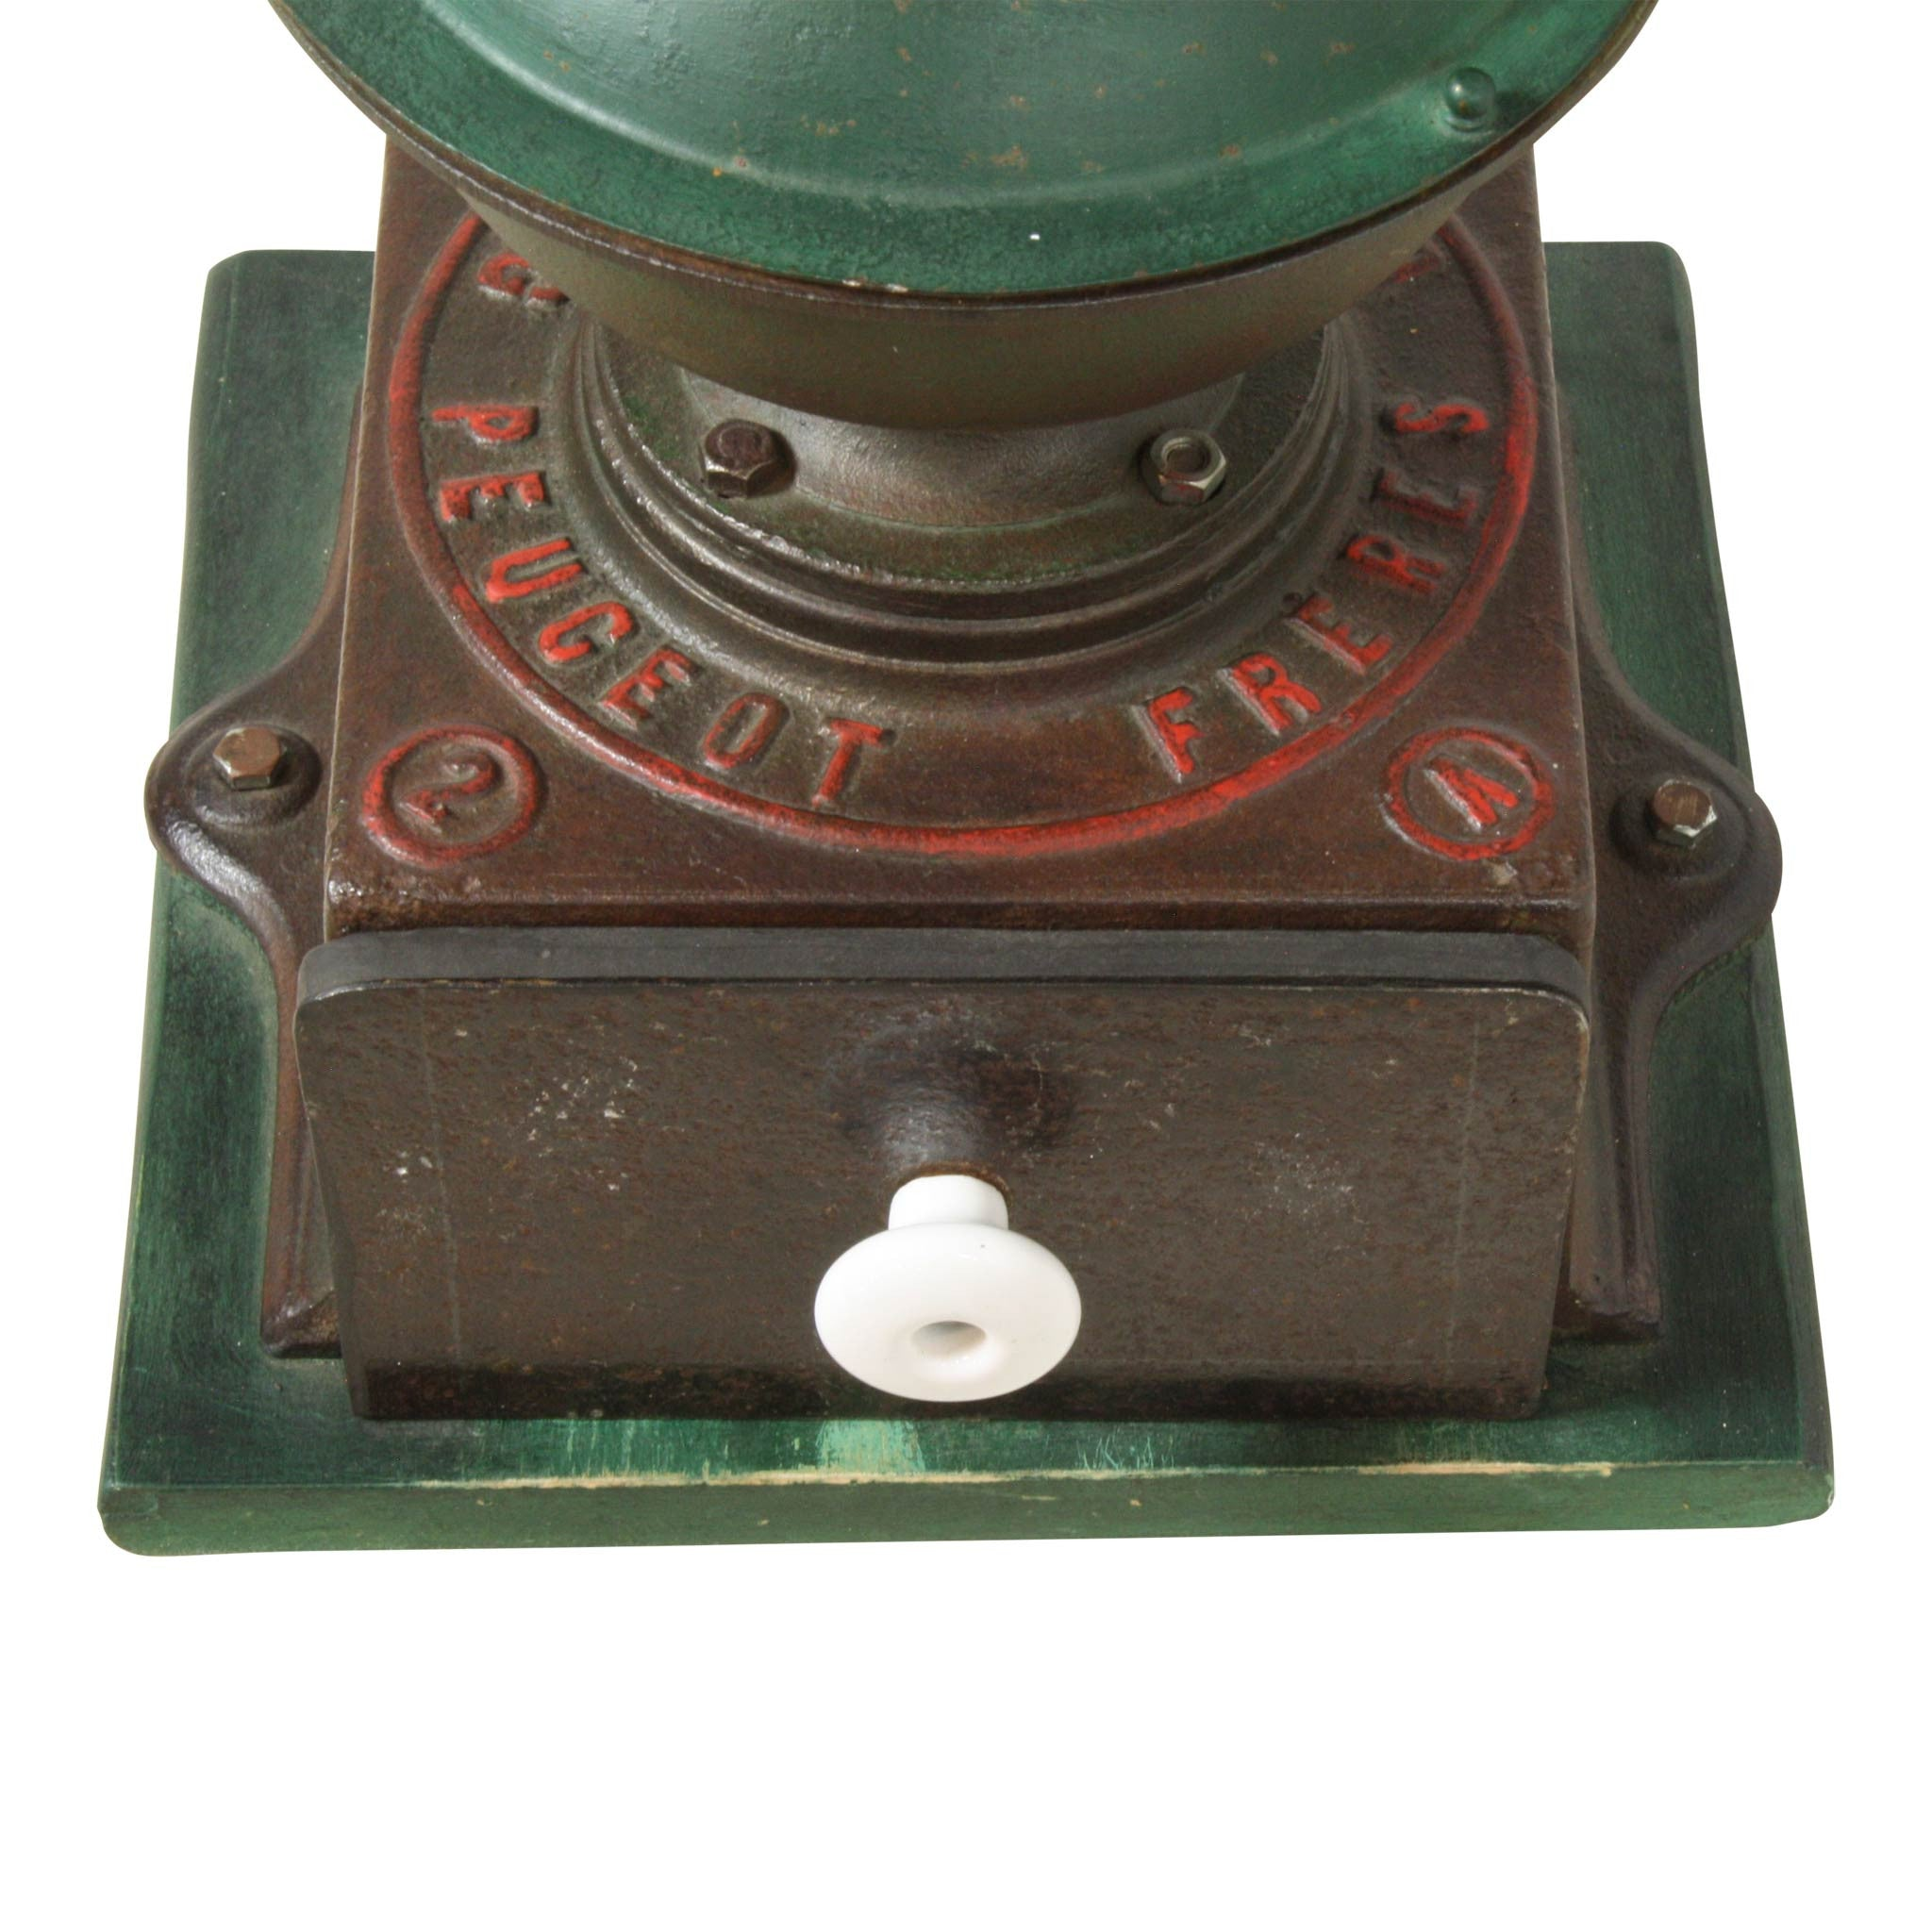 Vintage French Industrial Coffee Grinder